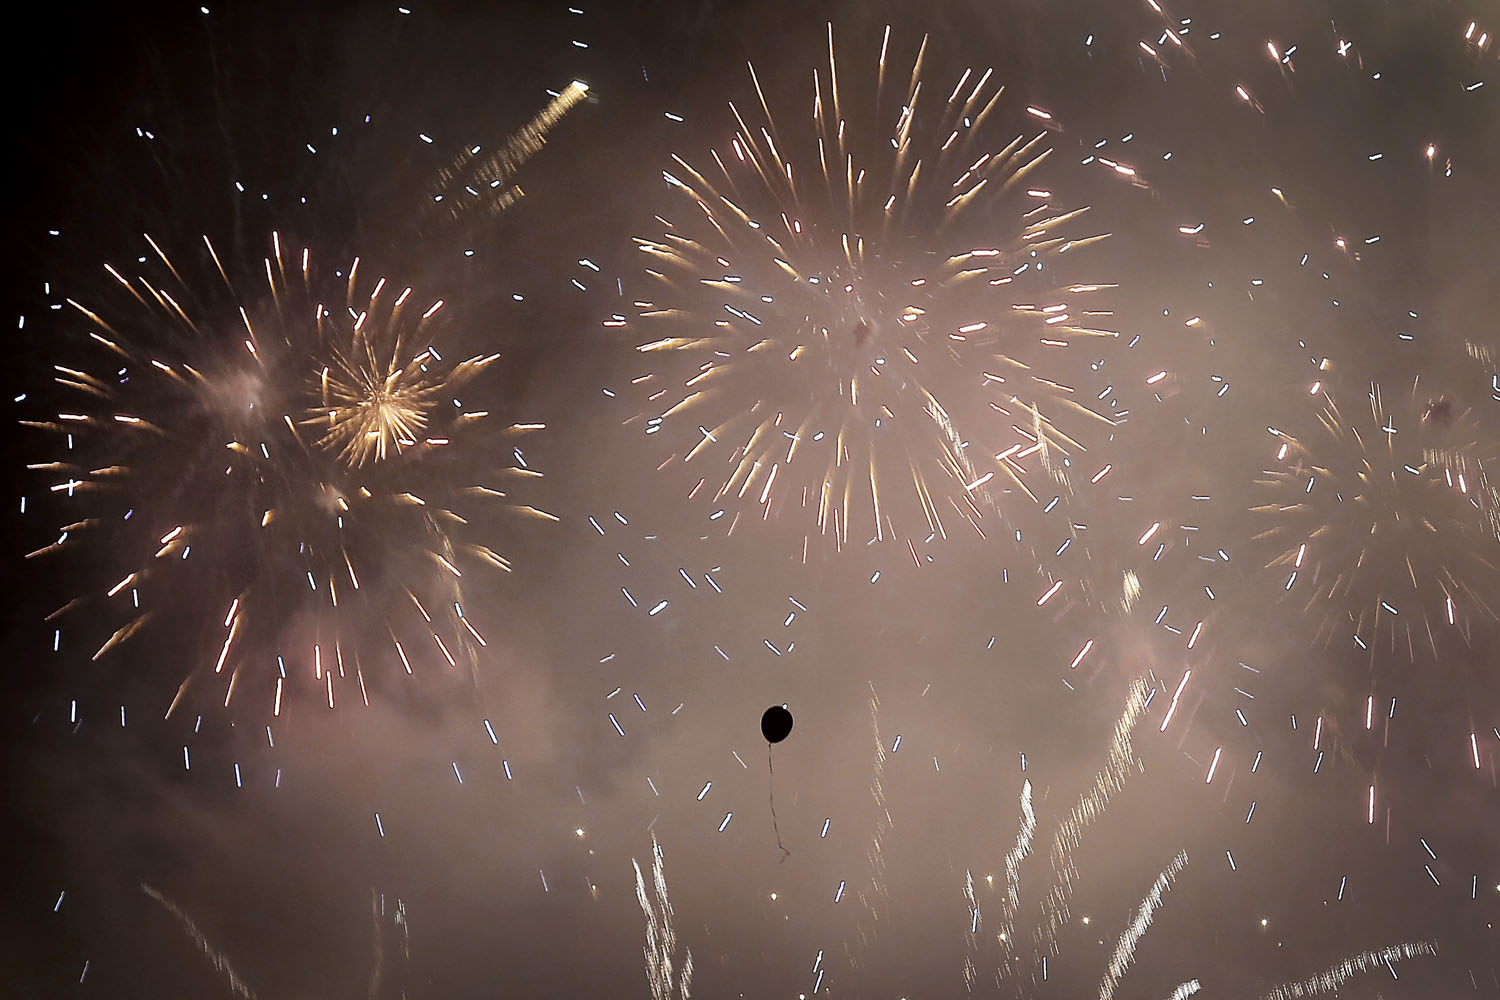 Jan. 1, 2014. A balloon floats amidst fireworks exploding over the financial district at midnight in Singapore.